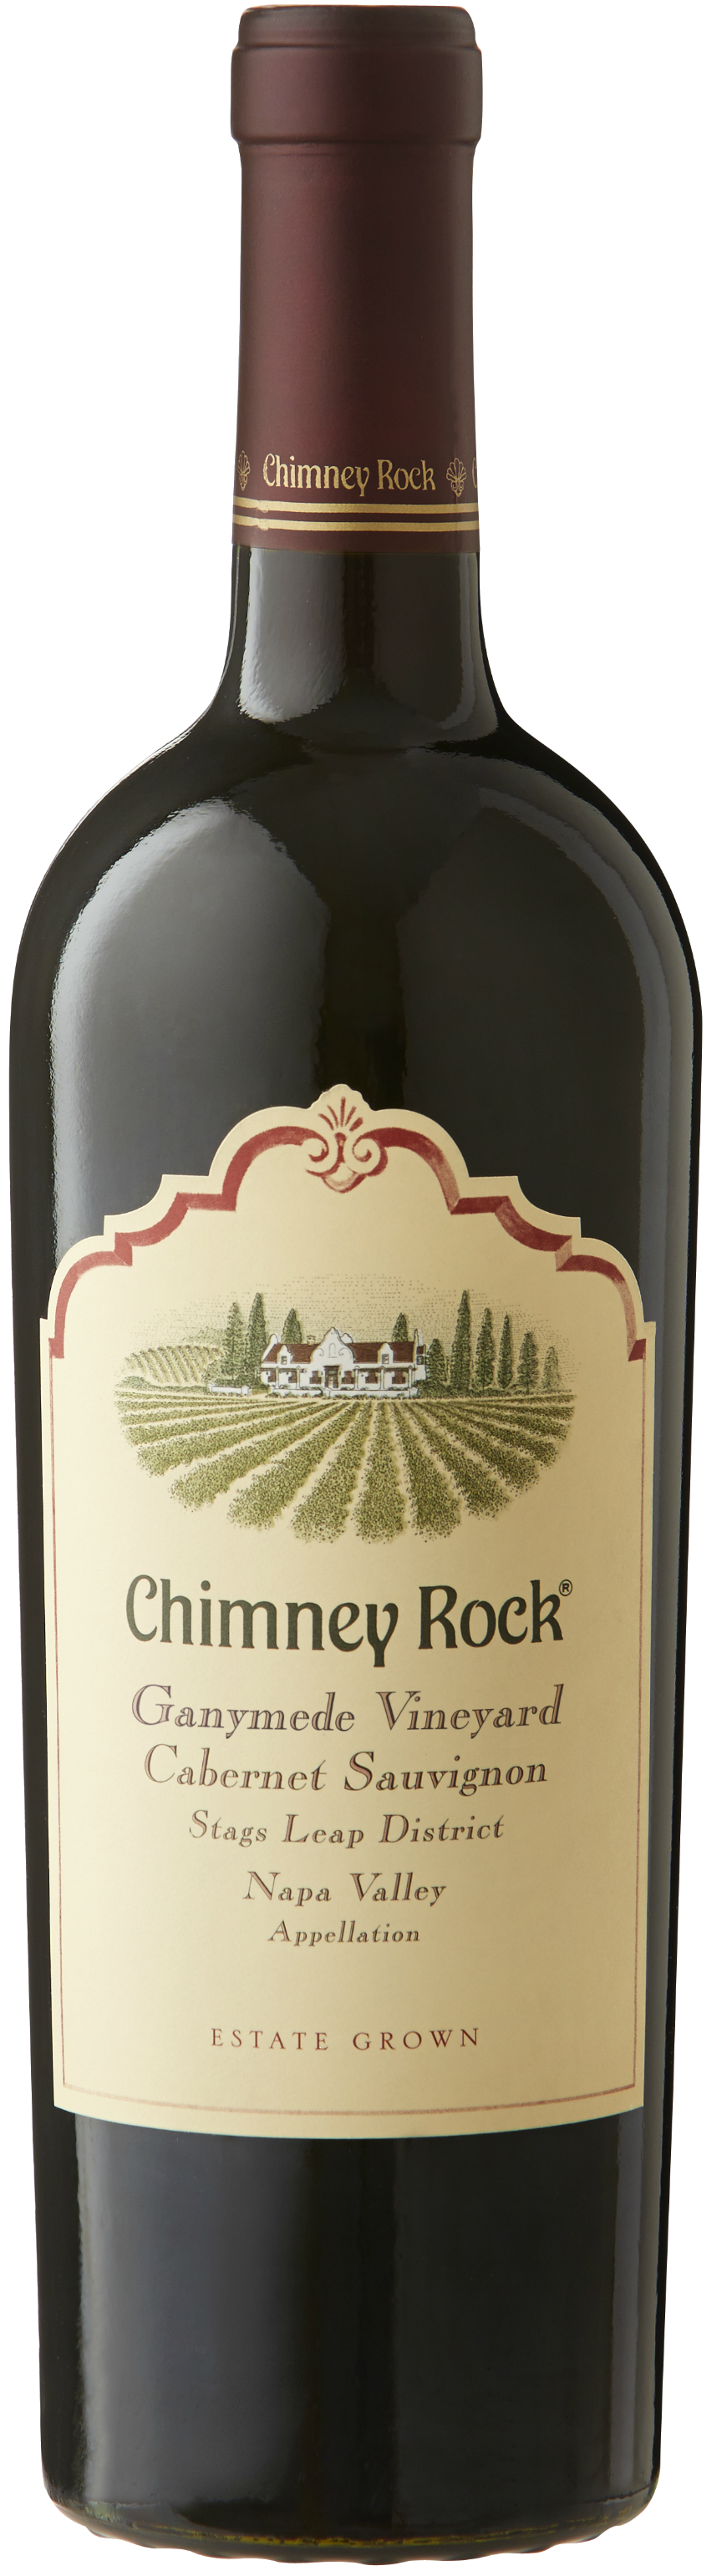 Chimney Rock Ganymede Cabernet Sauvignon Stags Leap District 2013 Product Image